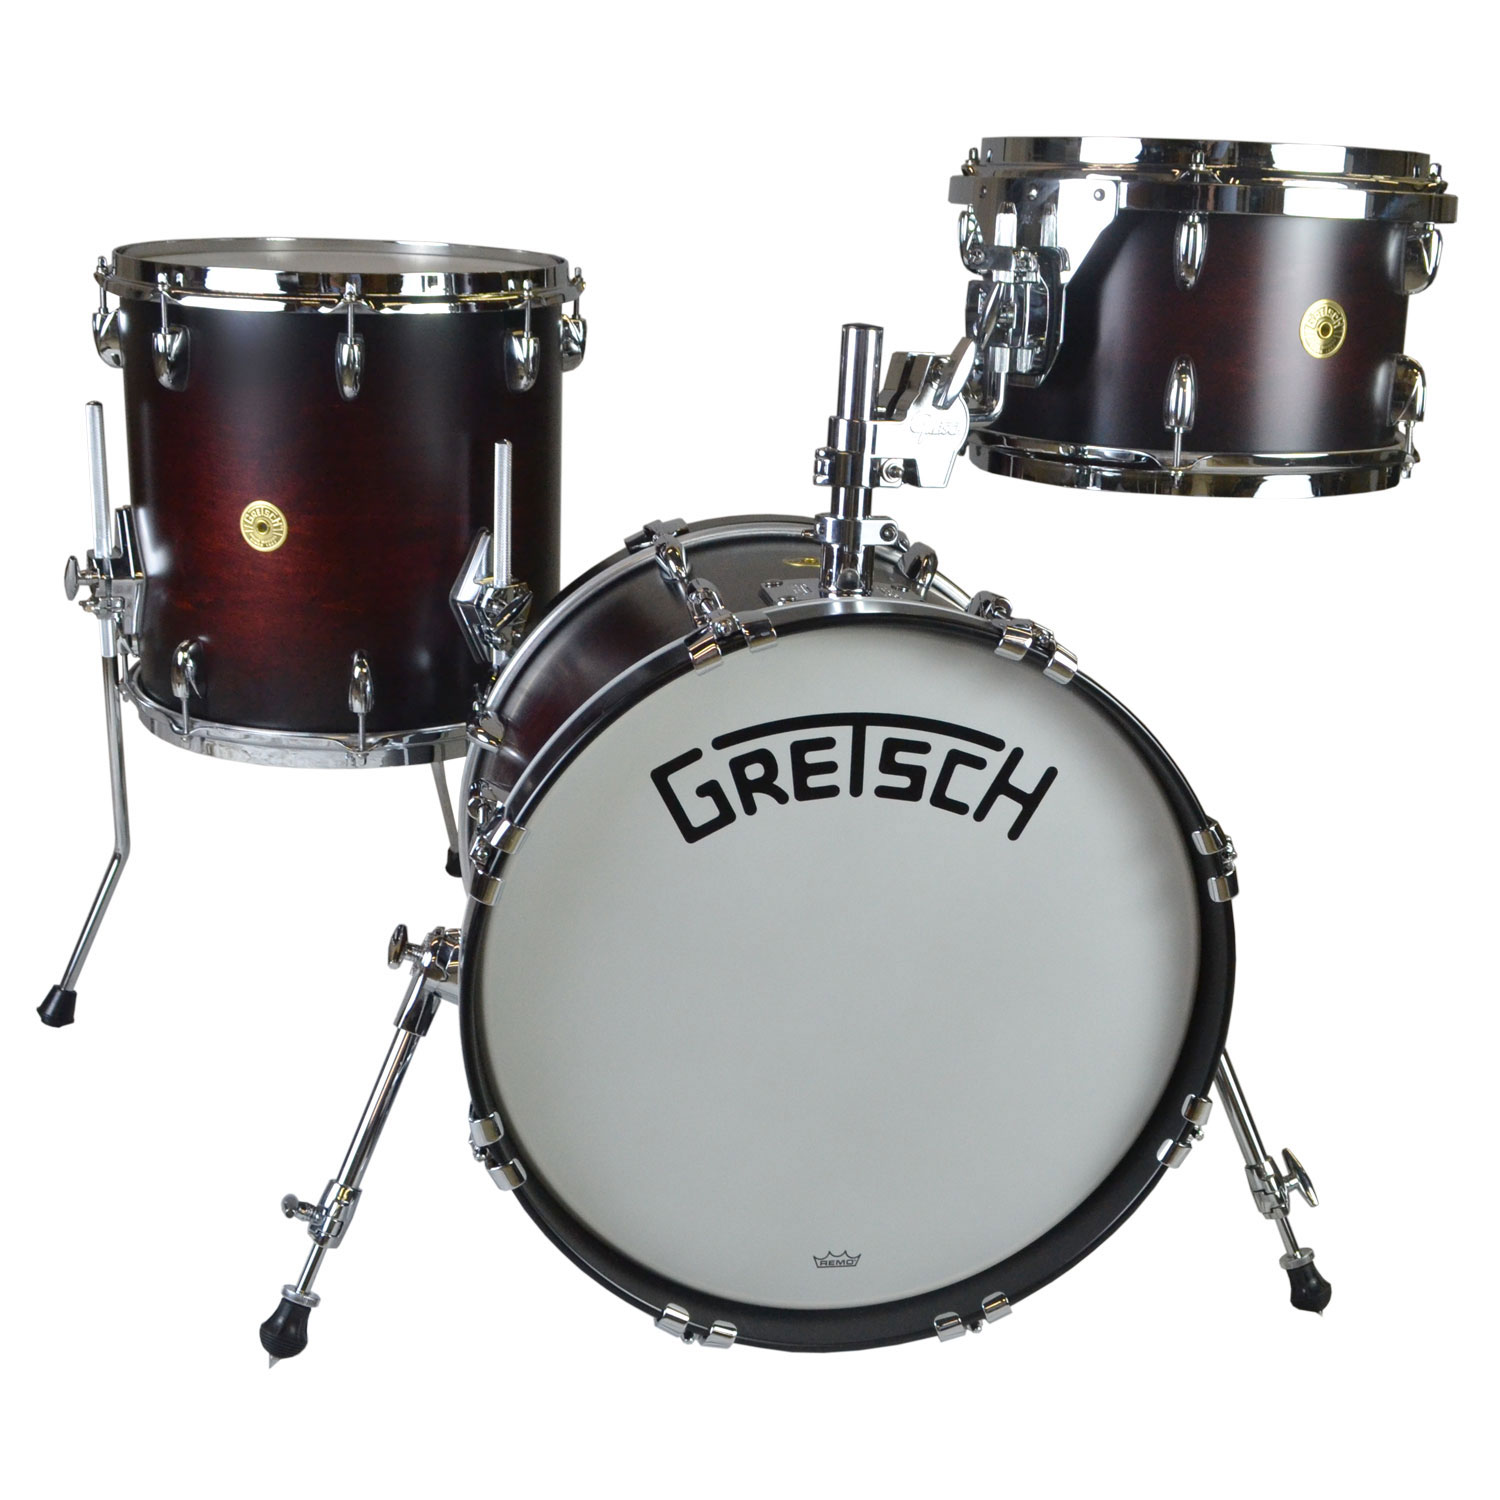 Dating a gretsch broadkaster